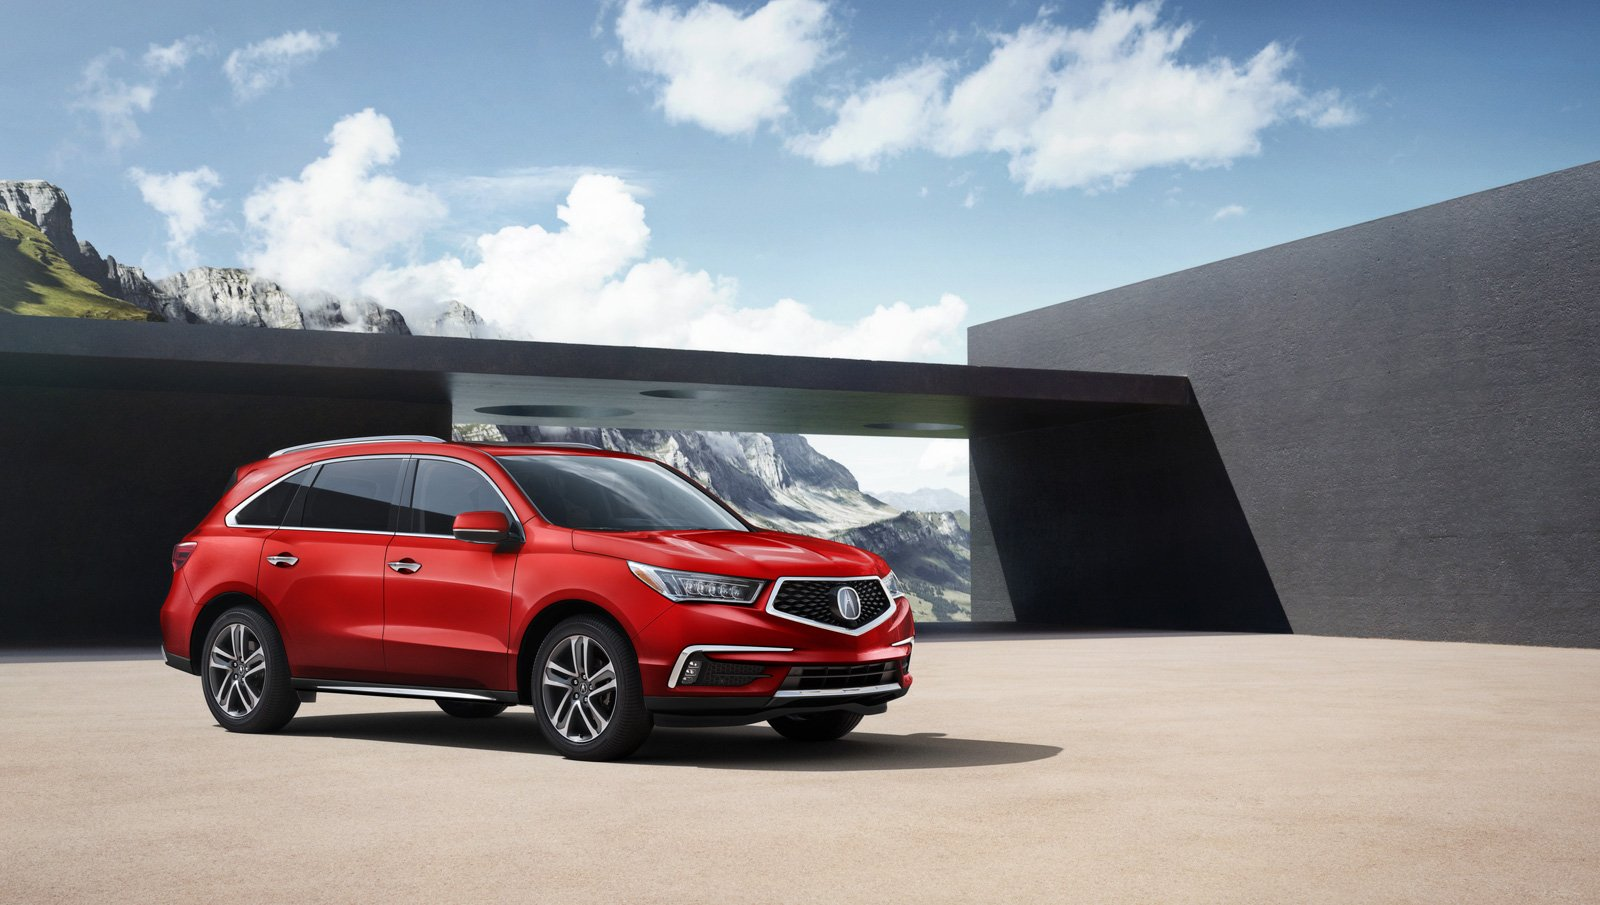 2018 Acura MDX Price Increased by $150 » AutoGuide.com News